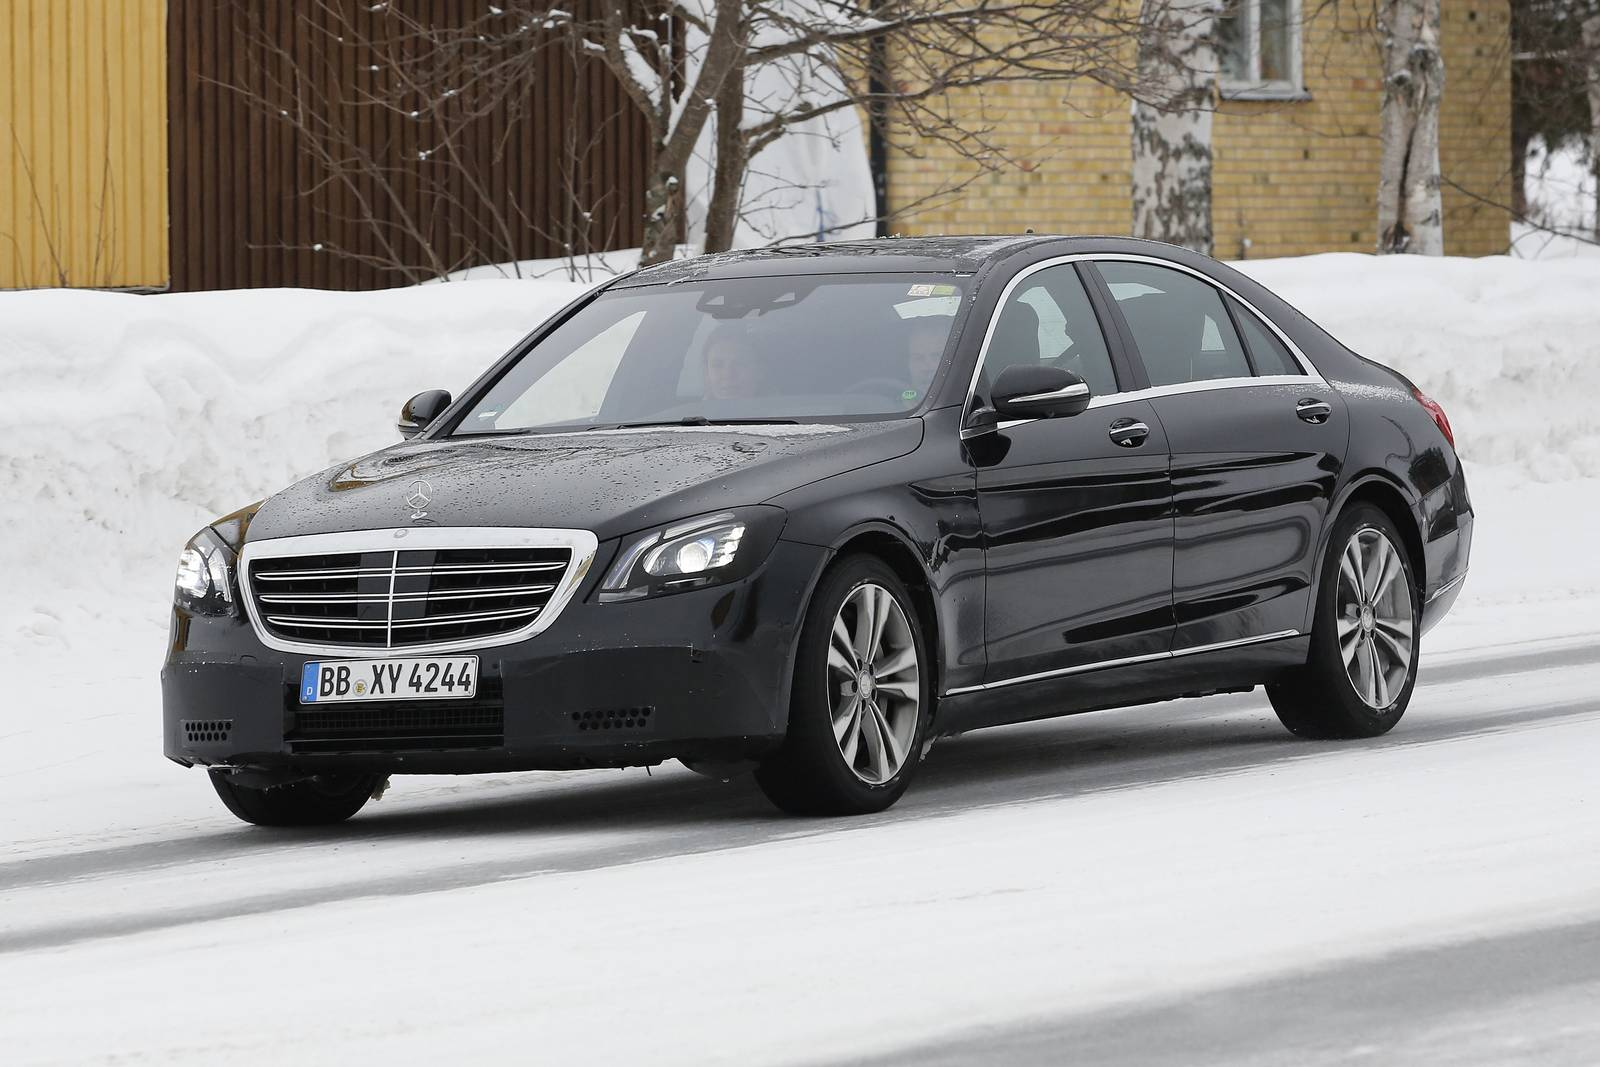 Mercedes benz s class facelift new spy shots gtspirit for What is the newest mercedes benz